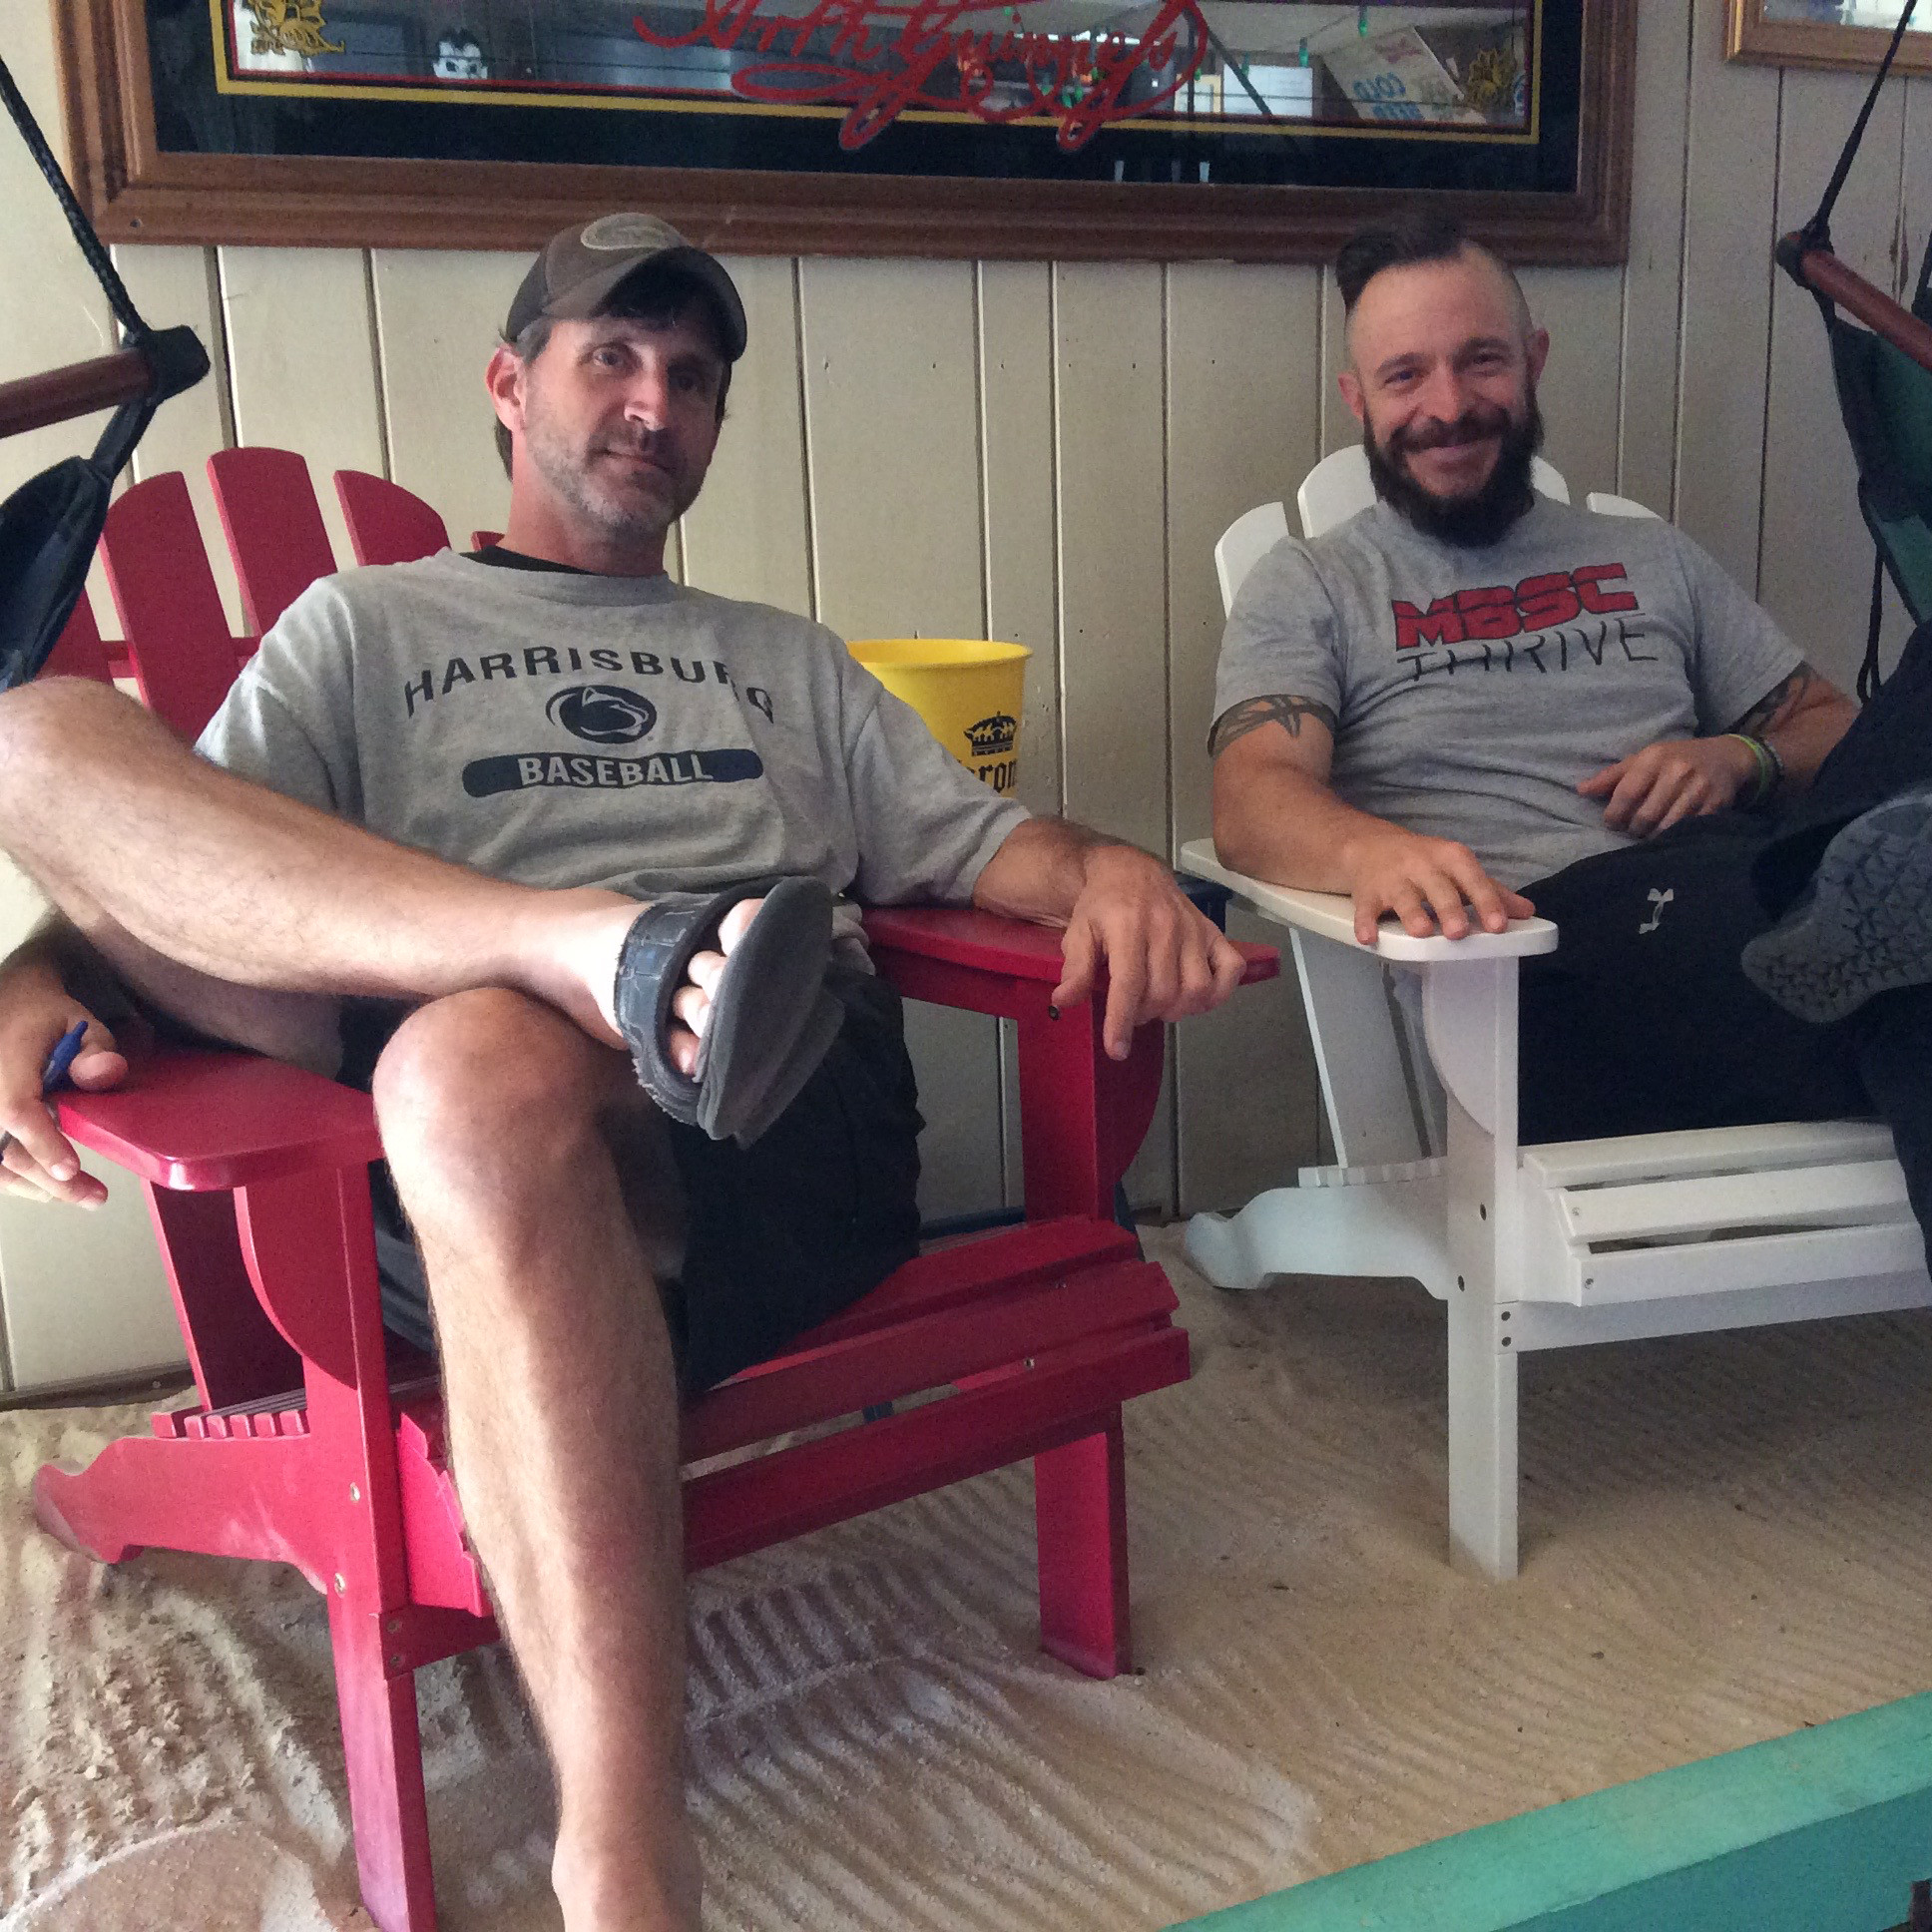 Steve Wian (left), the owner of Guido McNeal's, takes a break with his new business partner Jason Melhorn (right).